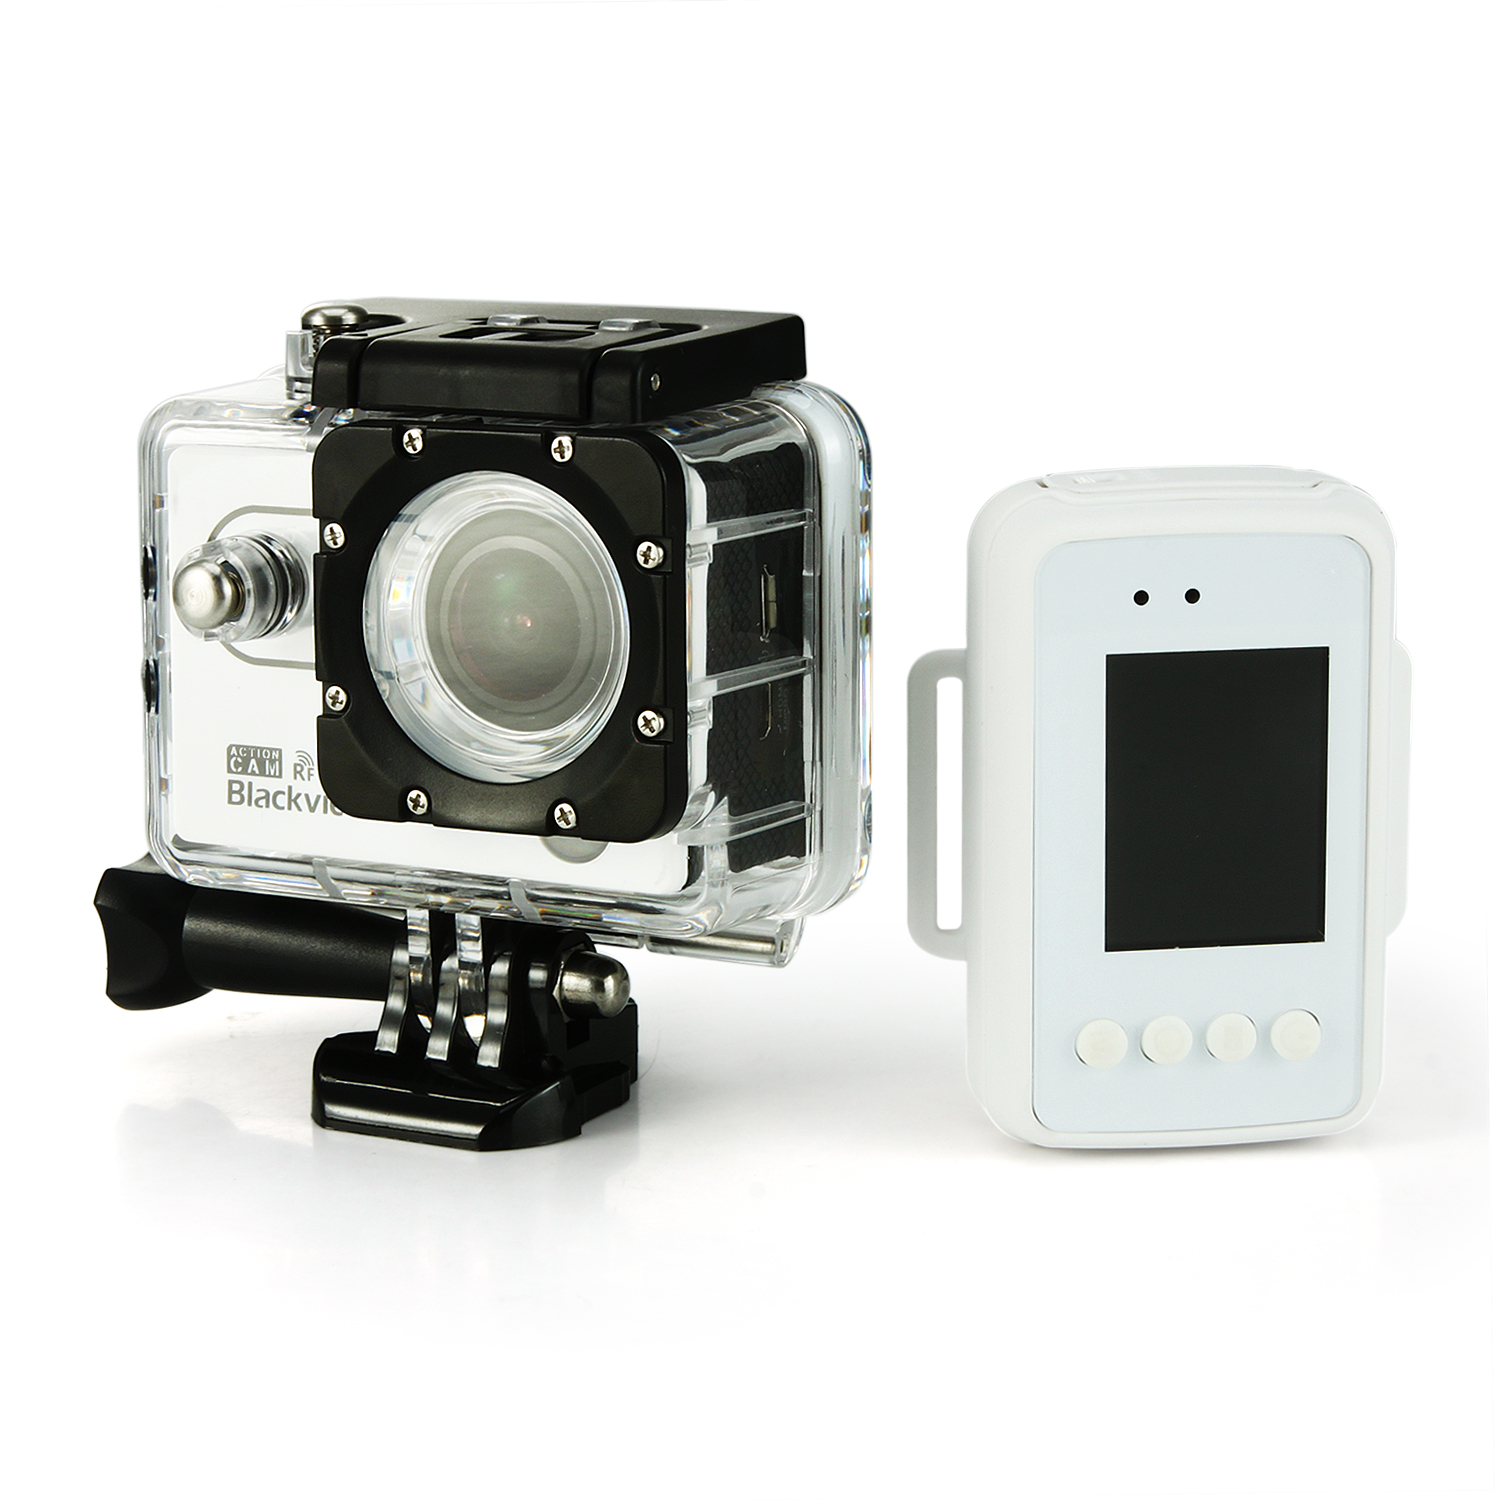 "Blackview Hero 2 16M 2.4G RF AMBA7LA50 2.0"" LCD Sport Video Camera Camcorder White"